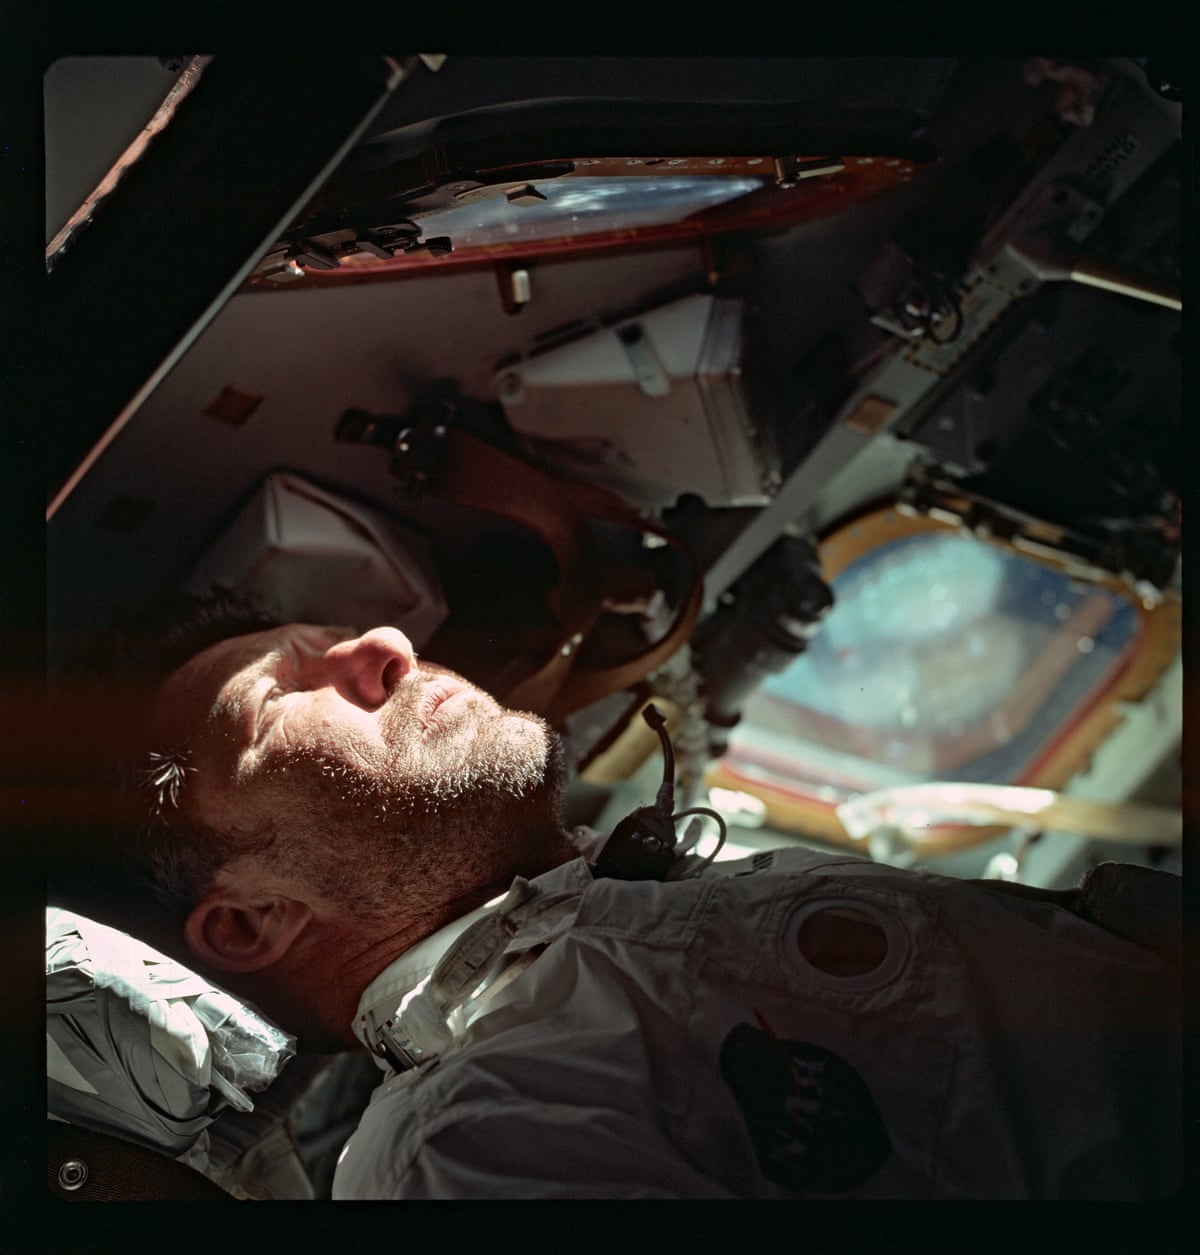 nasa apollo program pictures - photo #22